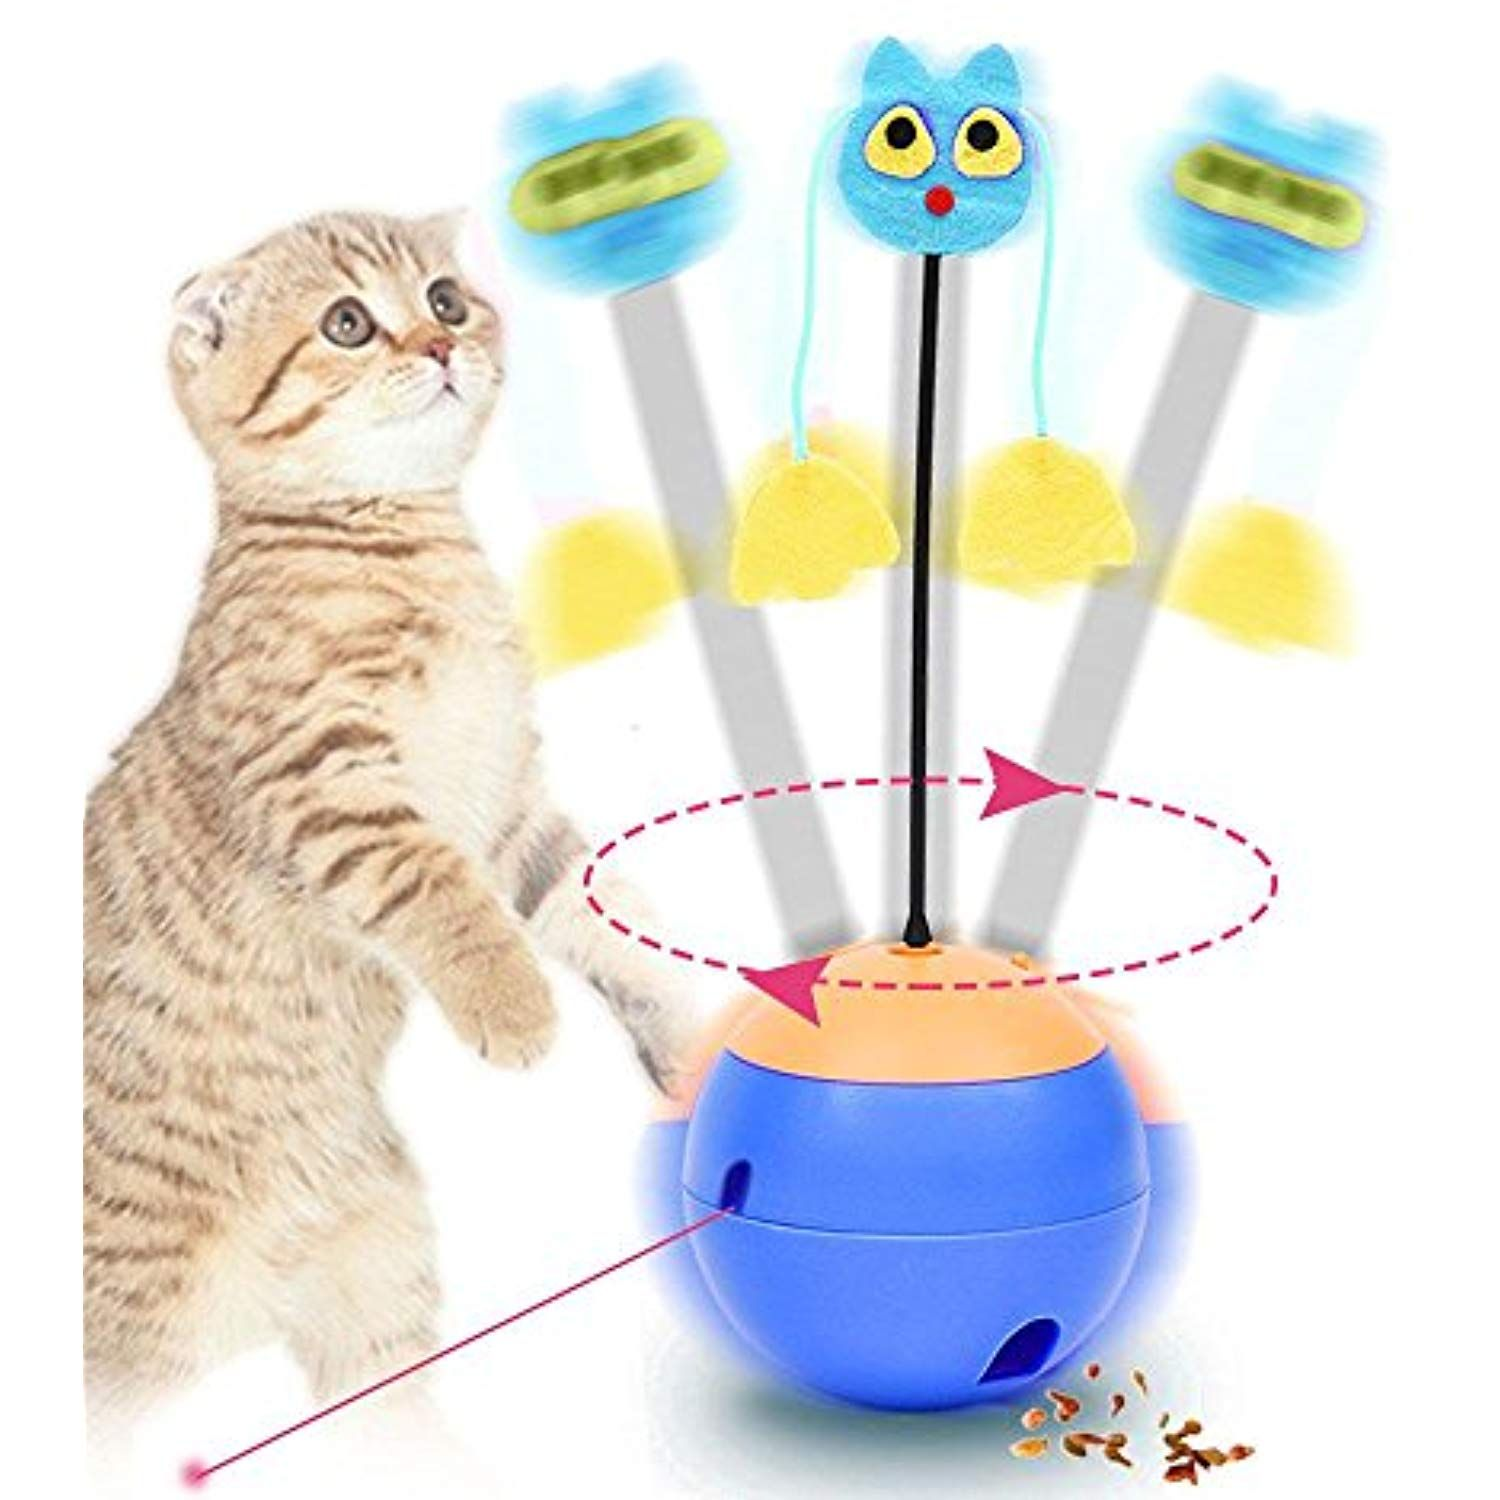 Foonee Interactive Cat Toys 3 In 1 Multi Function Automatic Spinning Electric Rotating Ball Tumbler Healthy Out Pets Gif Interactive Cat Toys Cat Toys Pet Gift